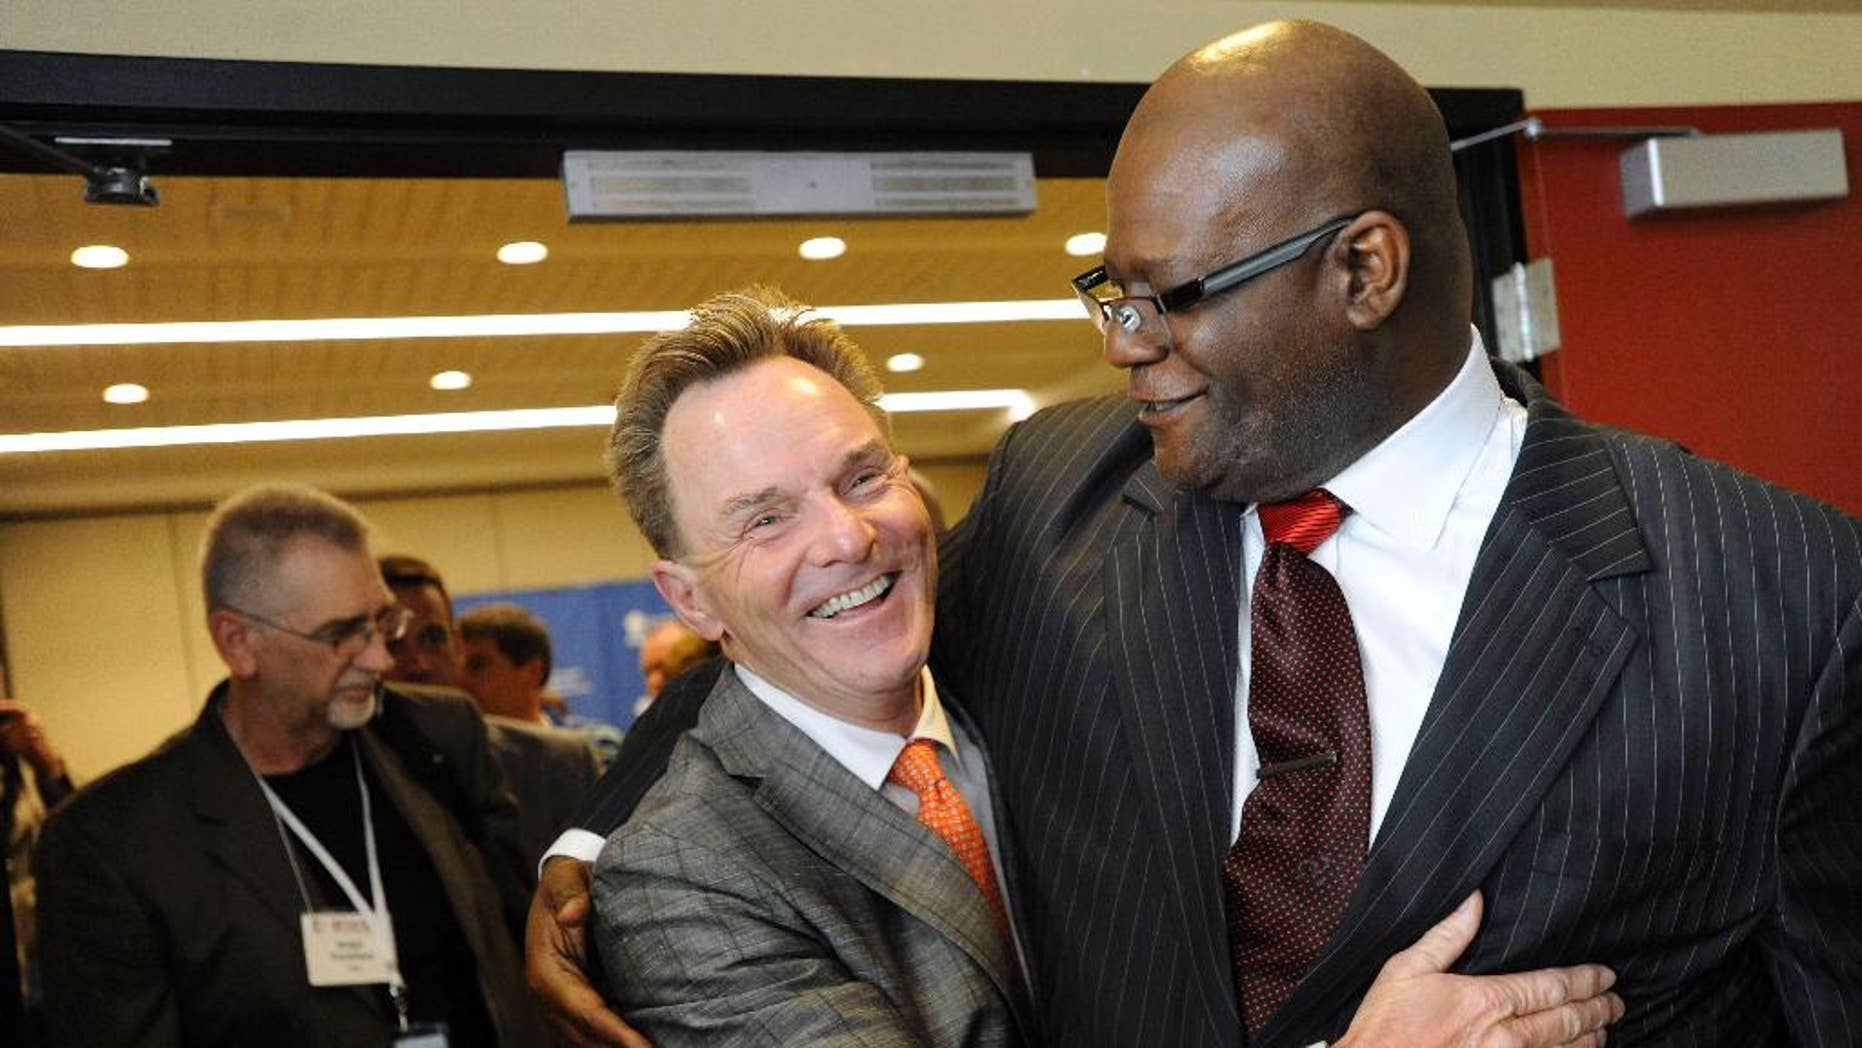 The Rev. Ronnie Floyd, center, of Cross Church in northwest Arkansas, hugs The Rev. Dwight McKissic, right, of Cornerstone Baptist Church in Arlington, Texas, after Floyd was elected the new president of the Southern Baptist Convention during its annual meeting Tuesday, June 10, 2014, in Baltimore. Floyd received 52 percent of votes cast by delegates to the annual meeting of the nation's largest Protestant denomination. (AP Photo/Steve Ruark)